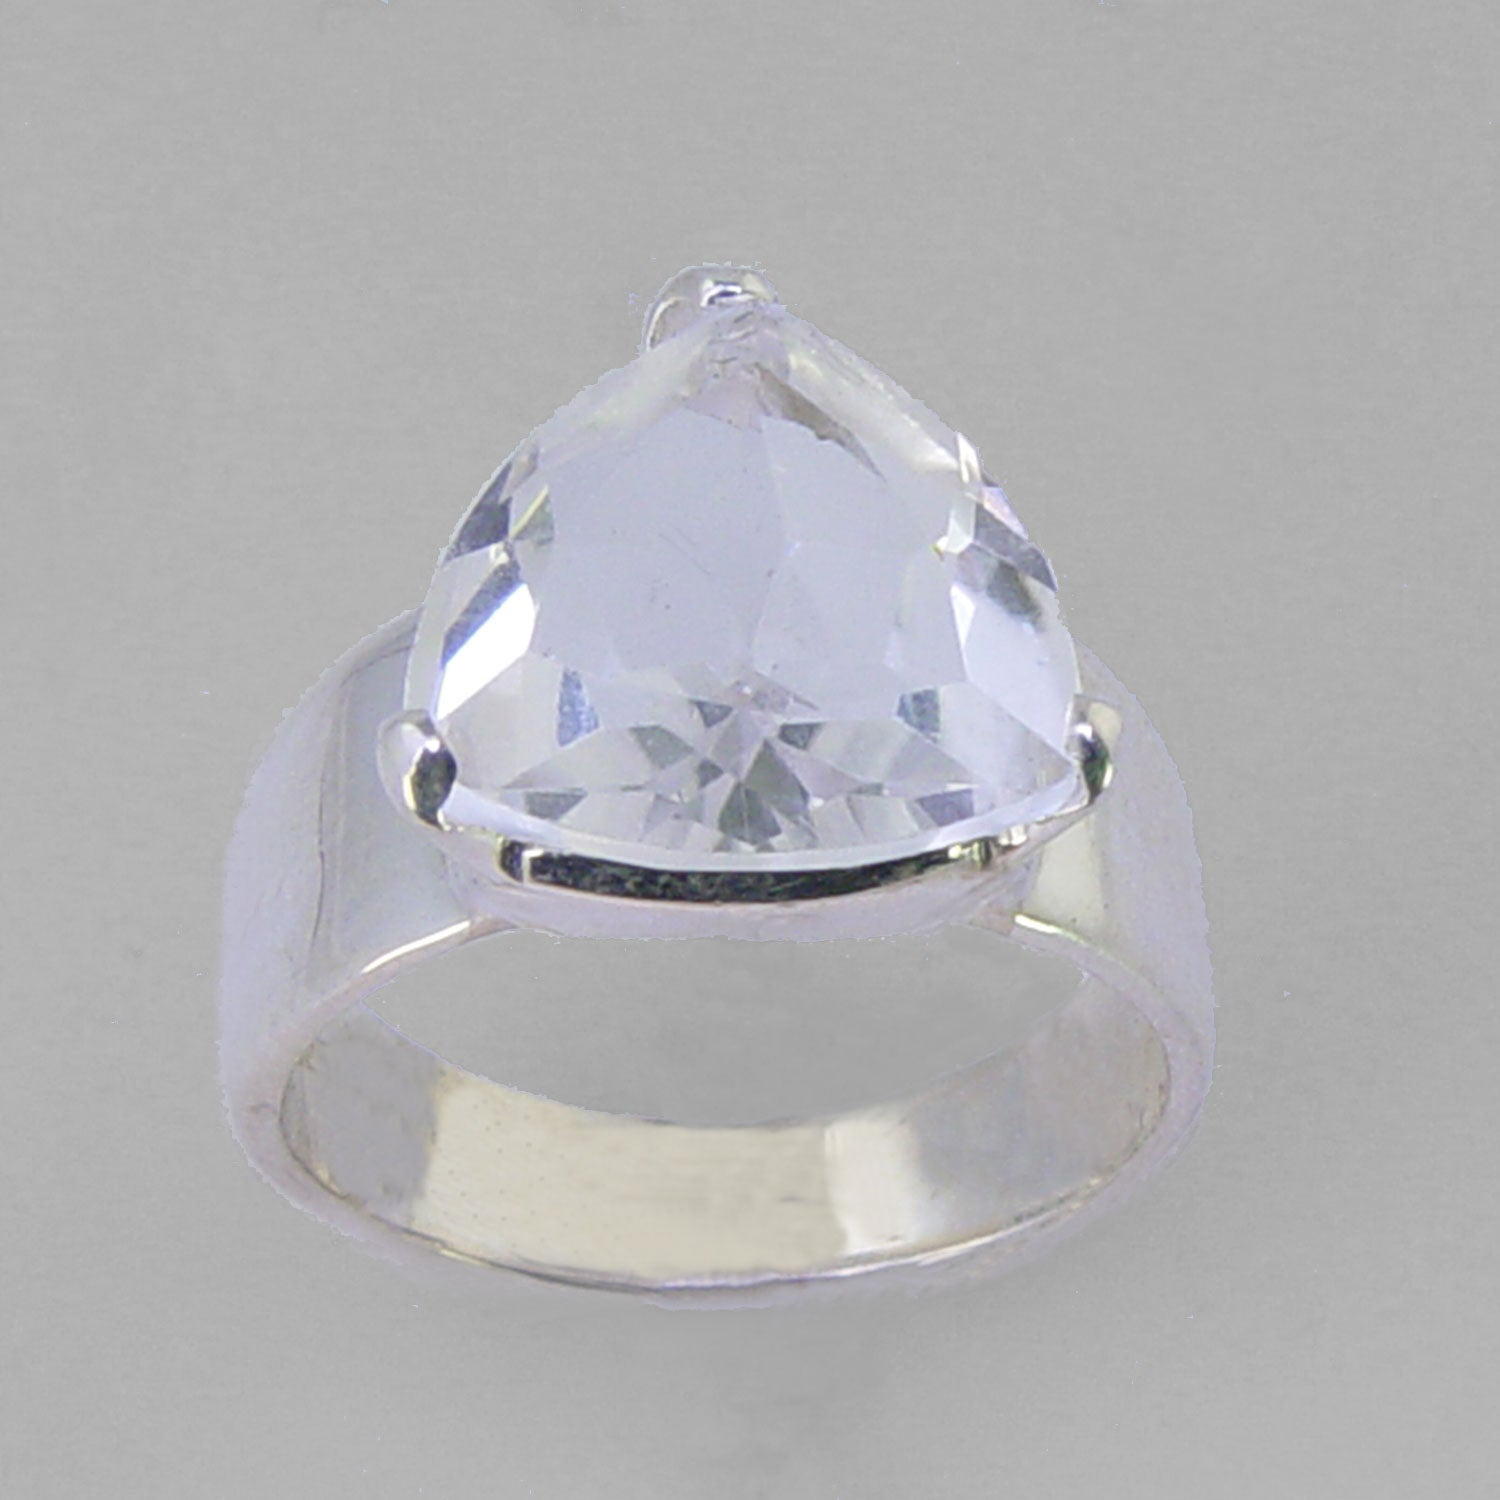 Quartz Crystal 5.72 ct Faceted Trillion Cut Sterling Silver Ring, Size 8 1/2